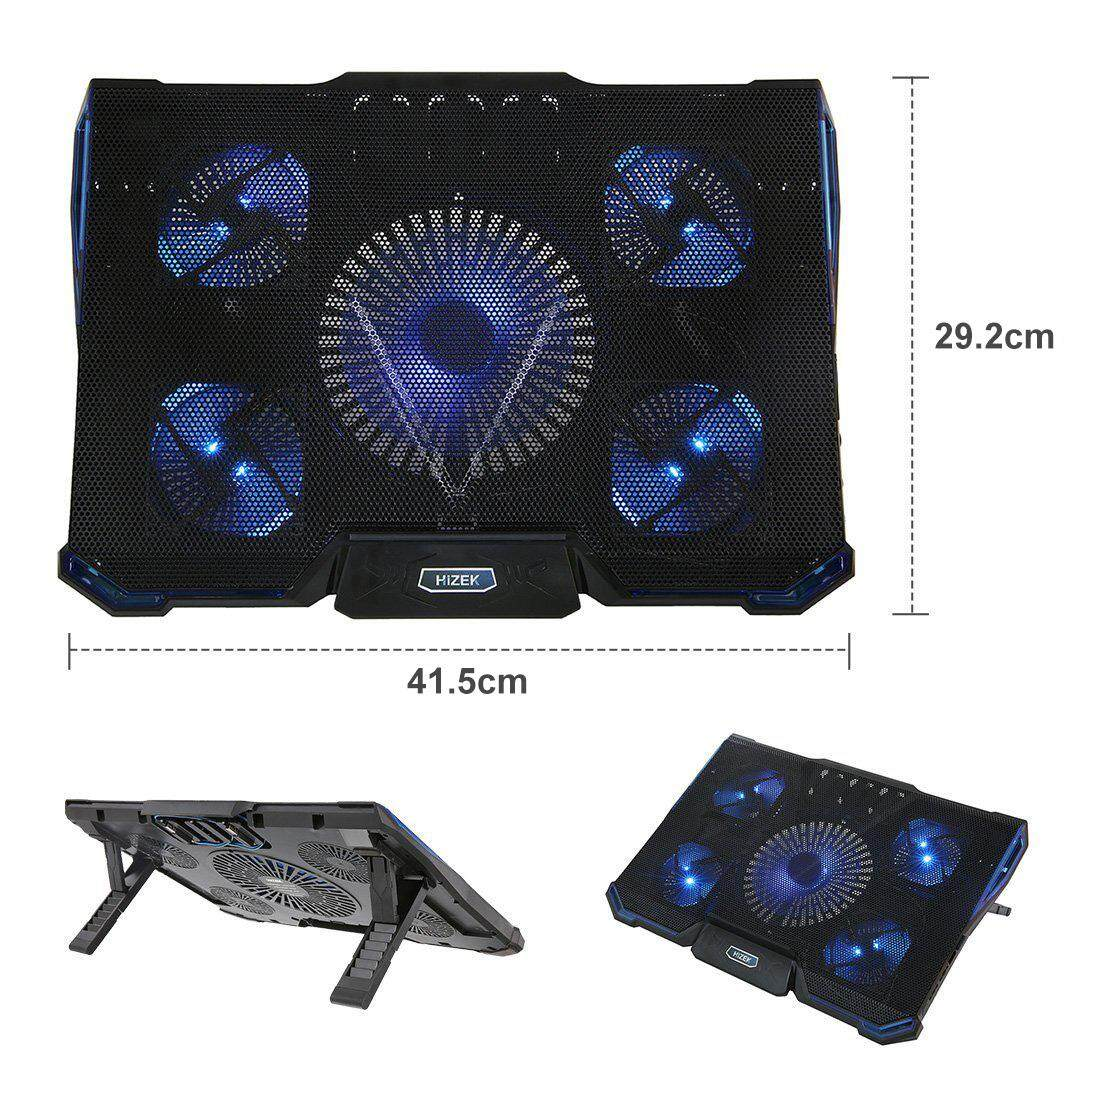 Hizek 5 Fans Laptop Cooling Pads,Ultra-Slim Laptop Cooler Pads Chill Mat with 5 Quiet Fans USB Powered Adjustable Mounts Stand with LED Lights for 14 - 17 Inch Laptops Malaysia